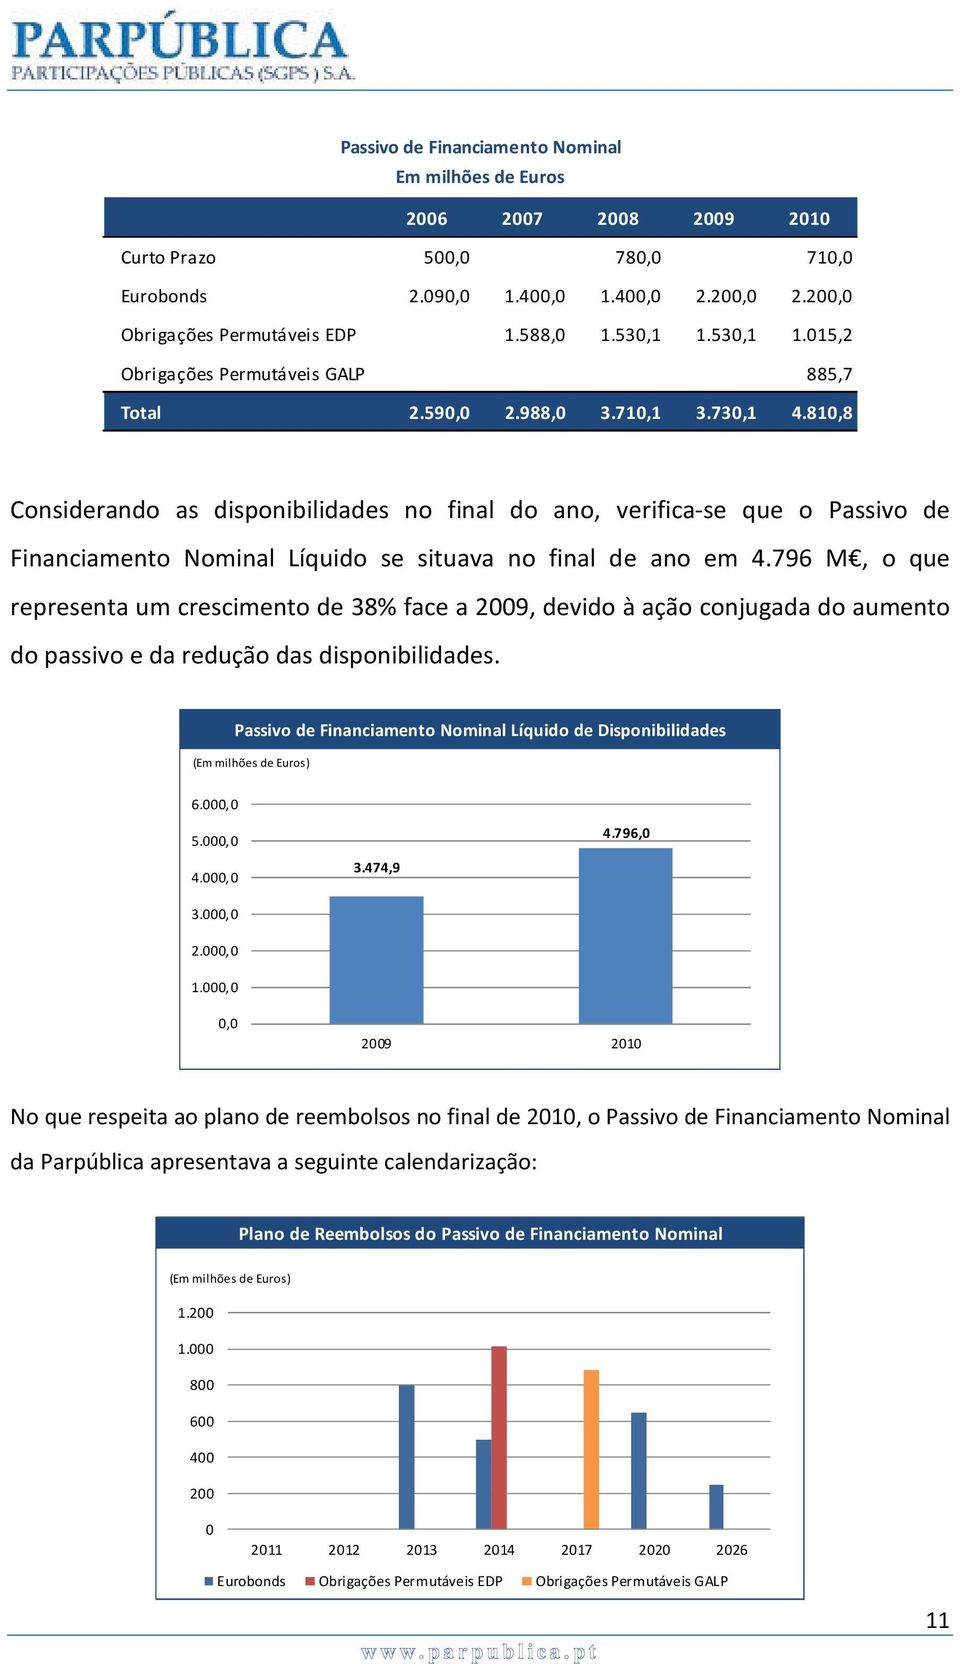 810,8 Considerando as disponibilidades no final do ano, verifica-se que o Passivo de Financiamento Nominal Líquido se situava no final de ano em 4.